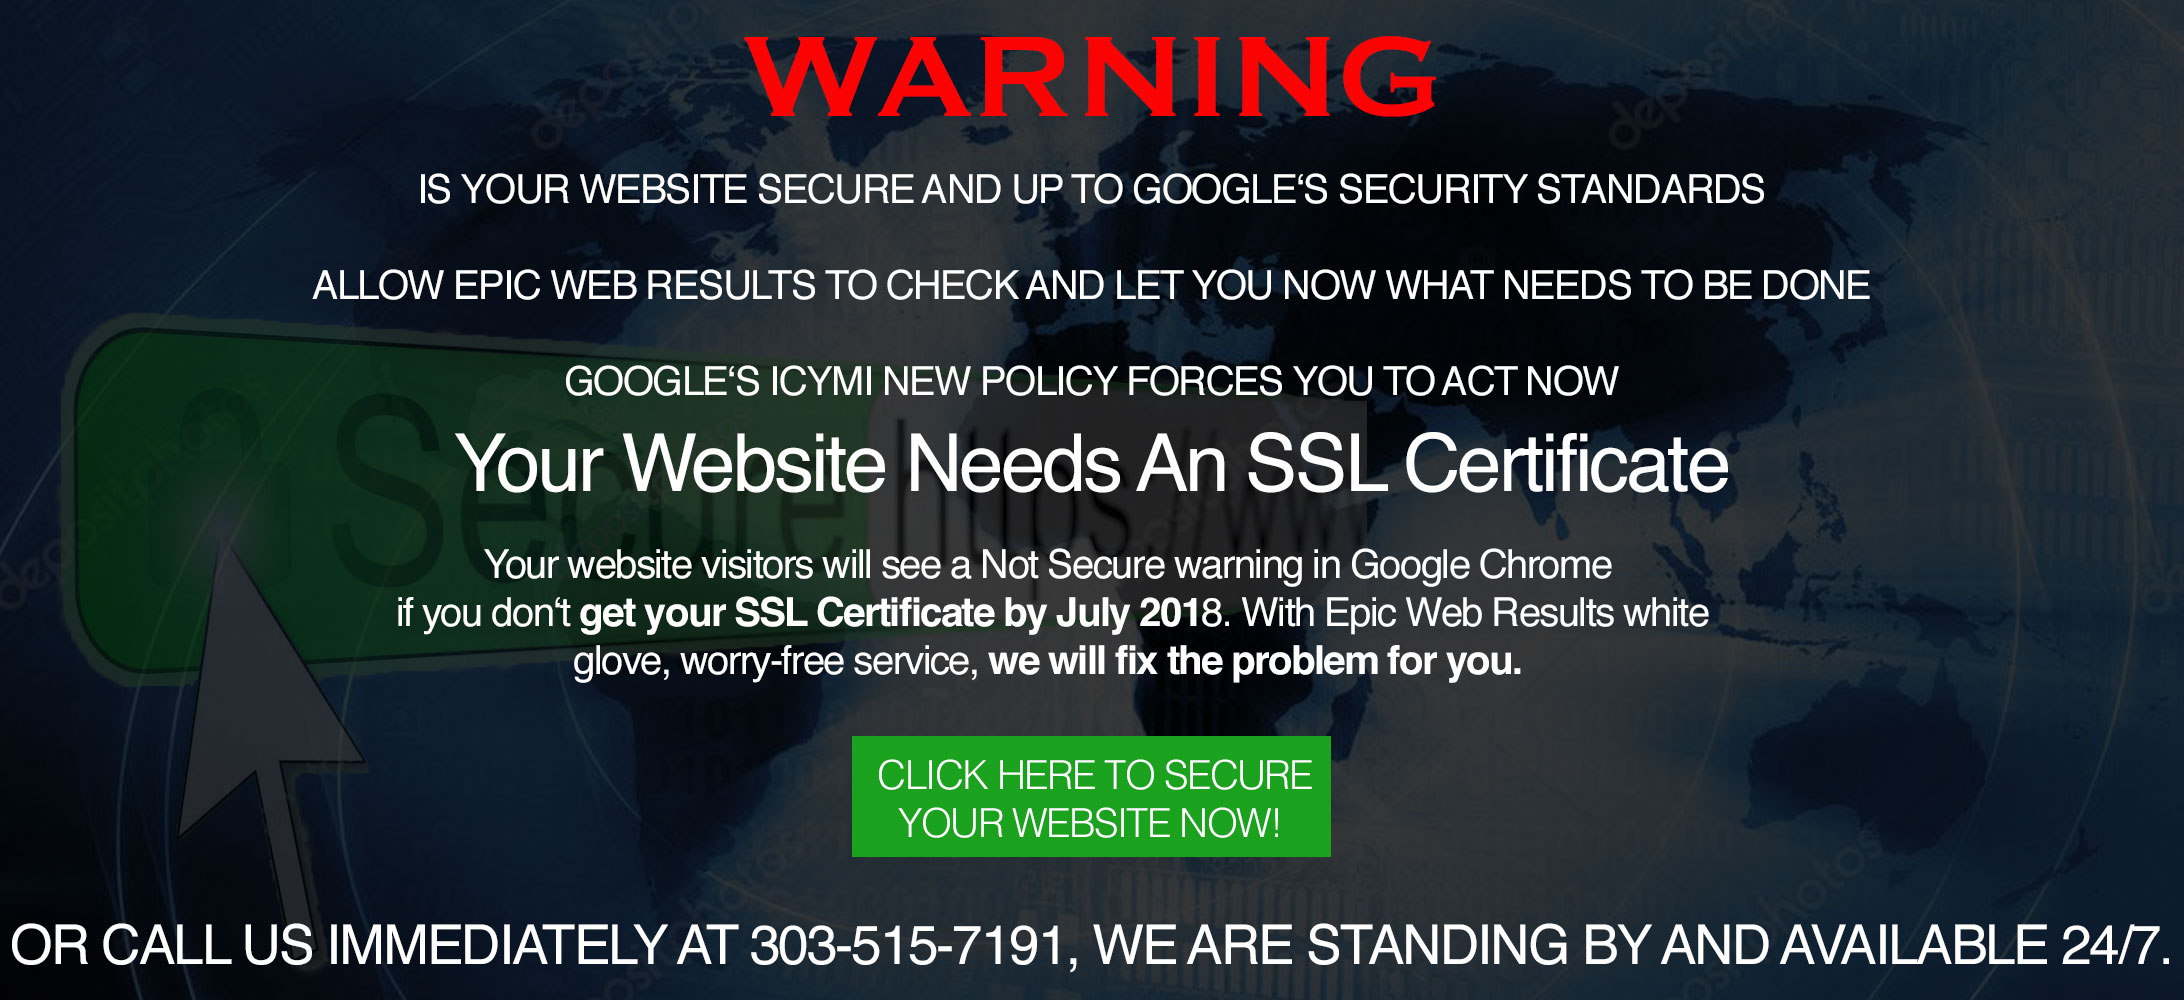 ssl certificate epic web results